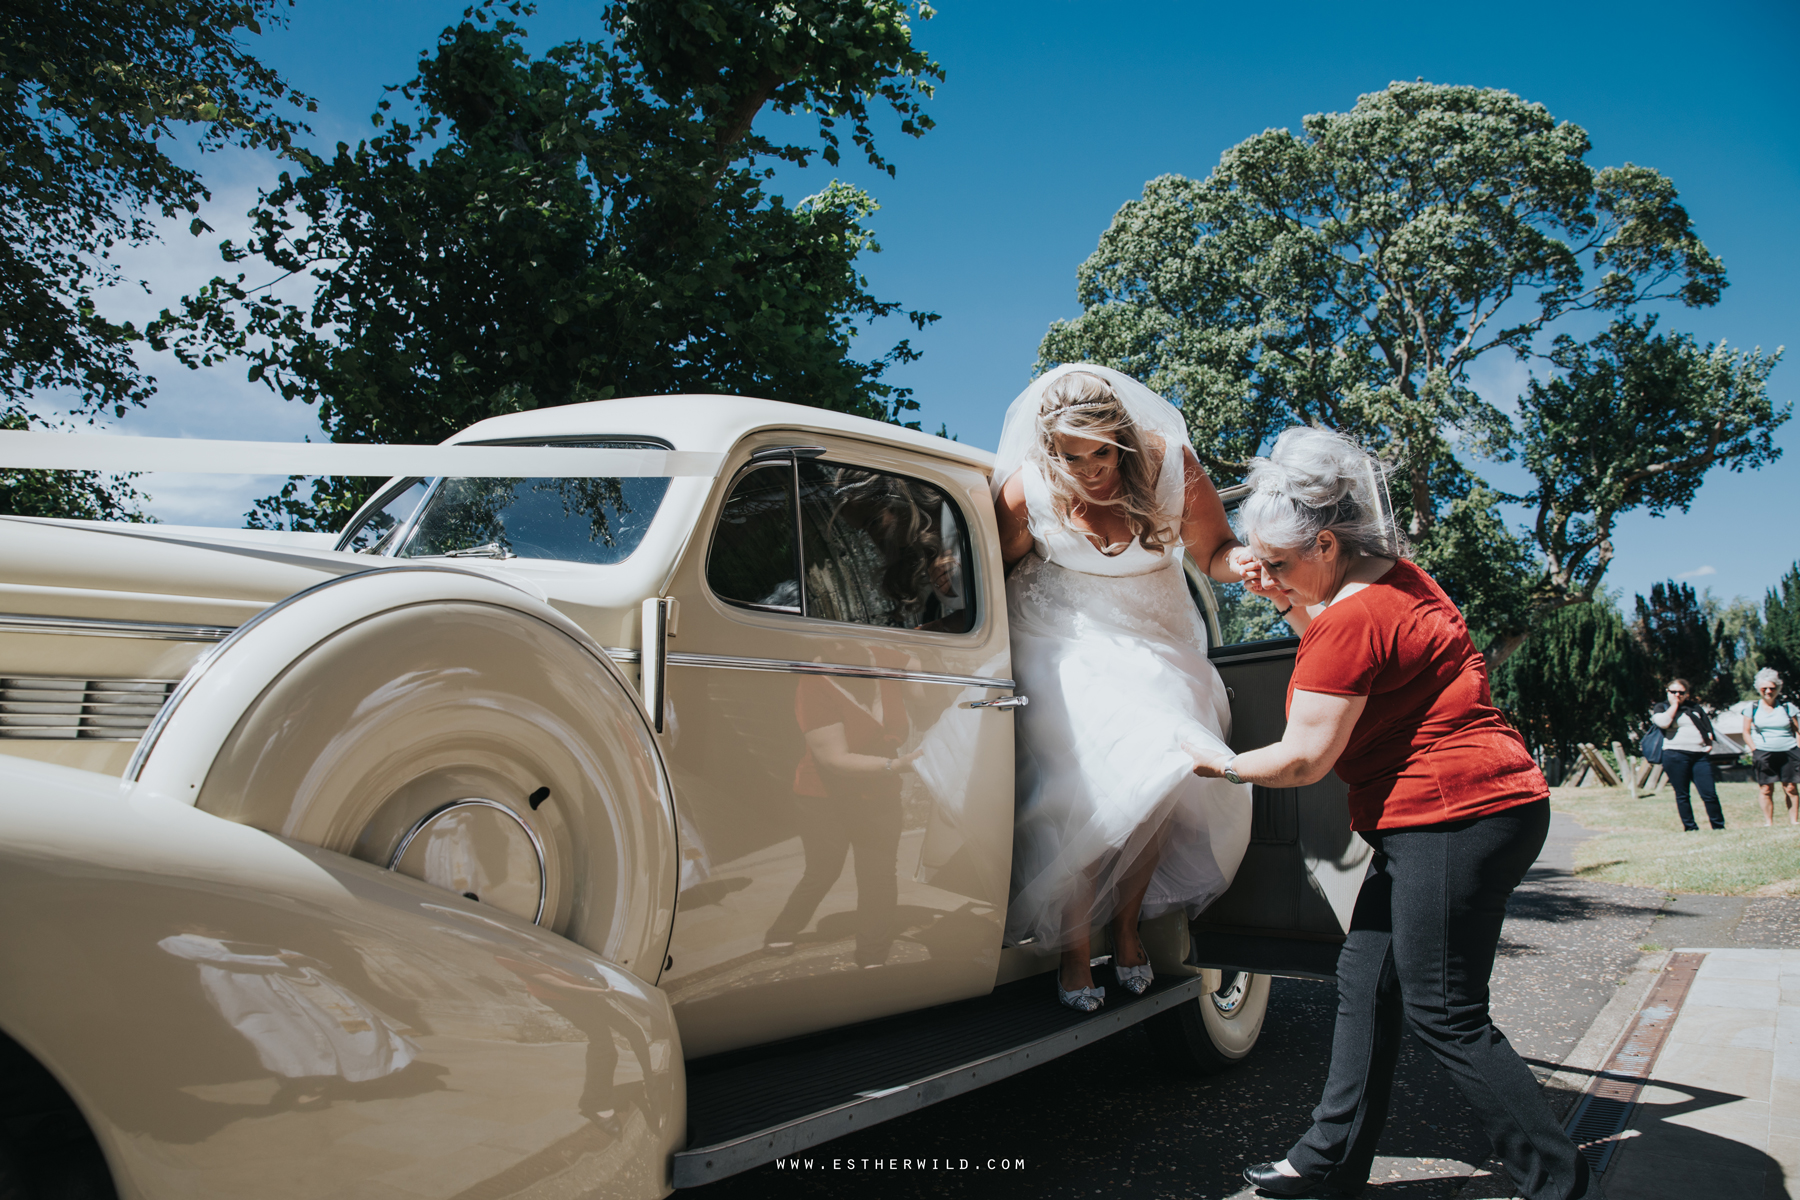 Swaffham_Wedding_Castle_Acre_Norfolk_Esther_Wild_Photographer_Wedding_Photography_3R8A0557.jpg